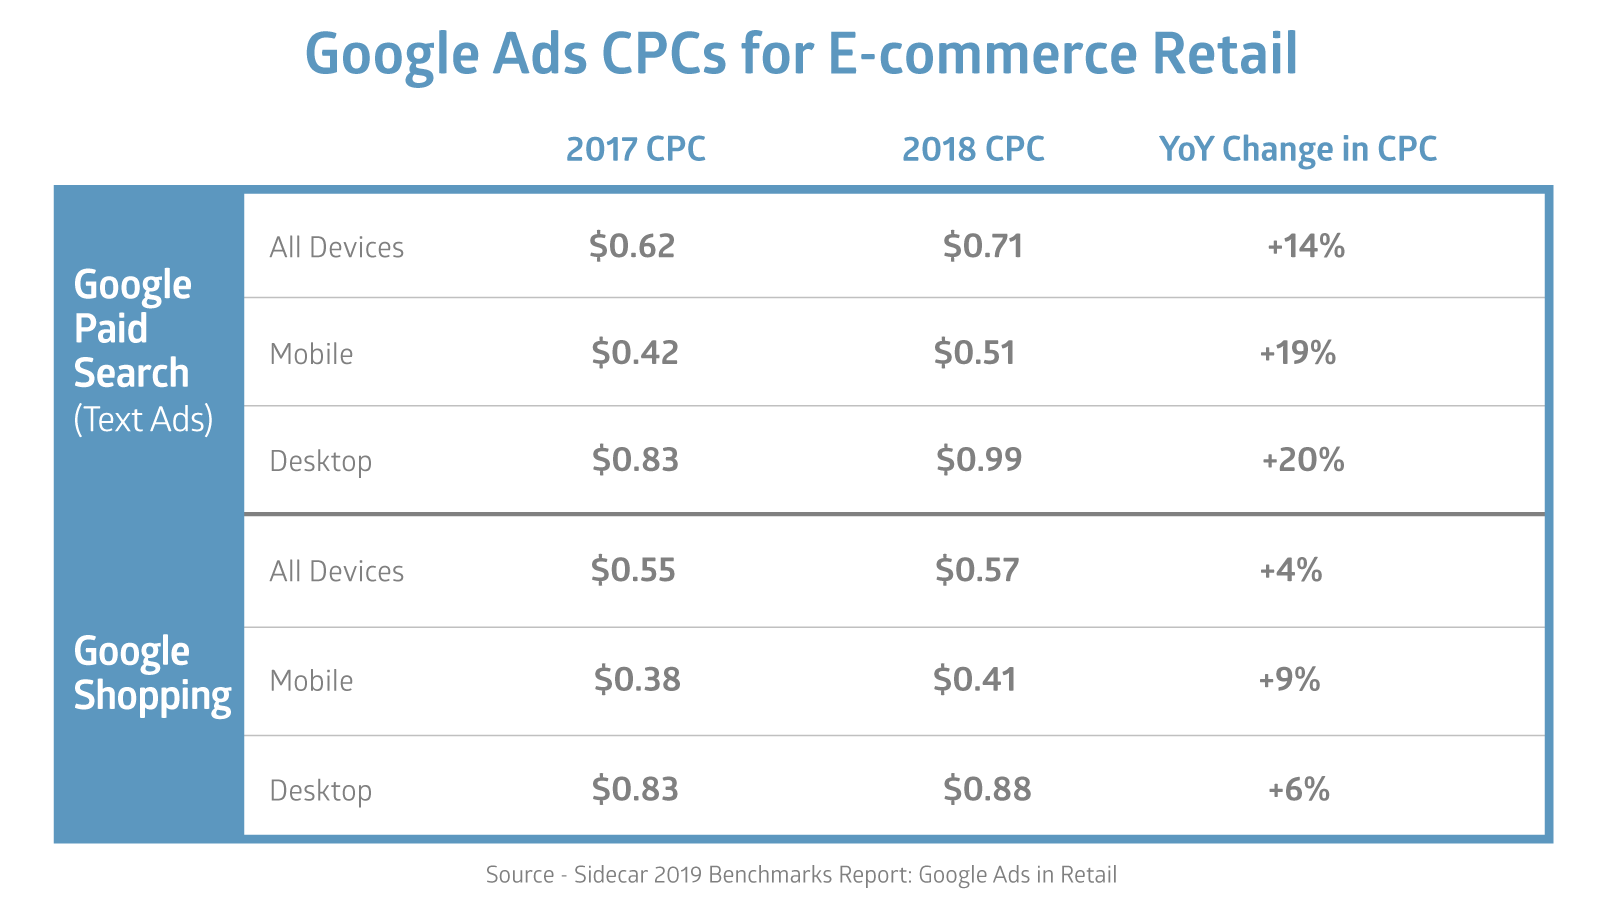 Google Ads CPCs for E-commerce Retail 2017-2018